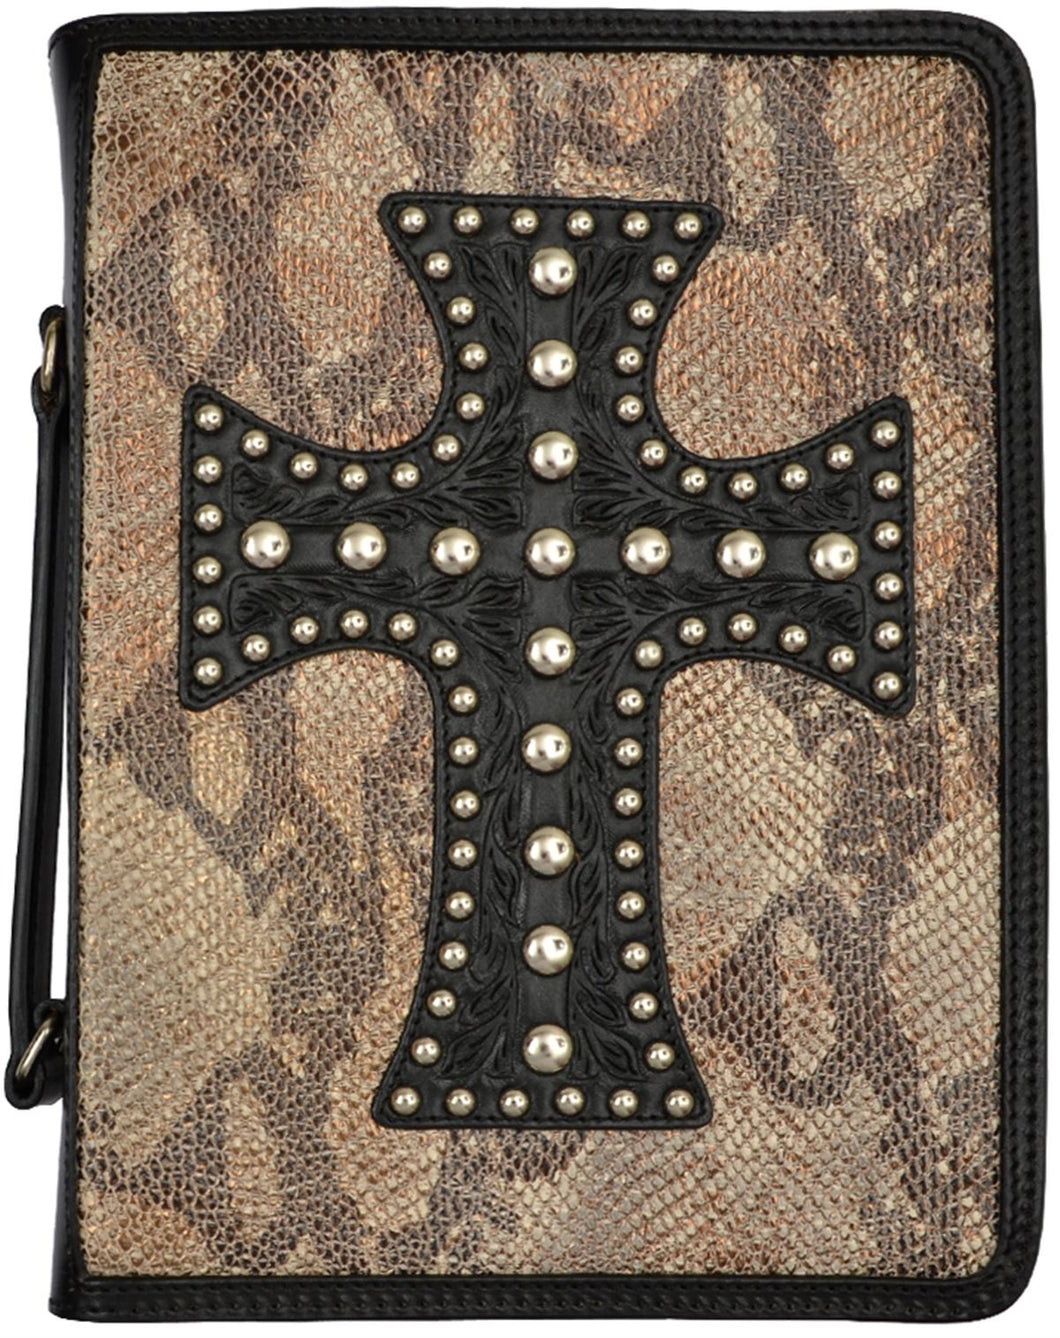 (3DB-BI300) Western Black Bible Cover with Cross and Snake Skin Print